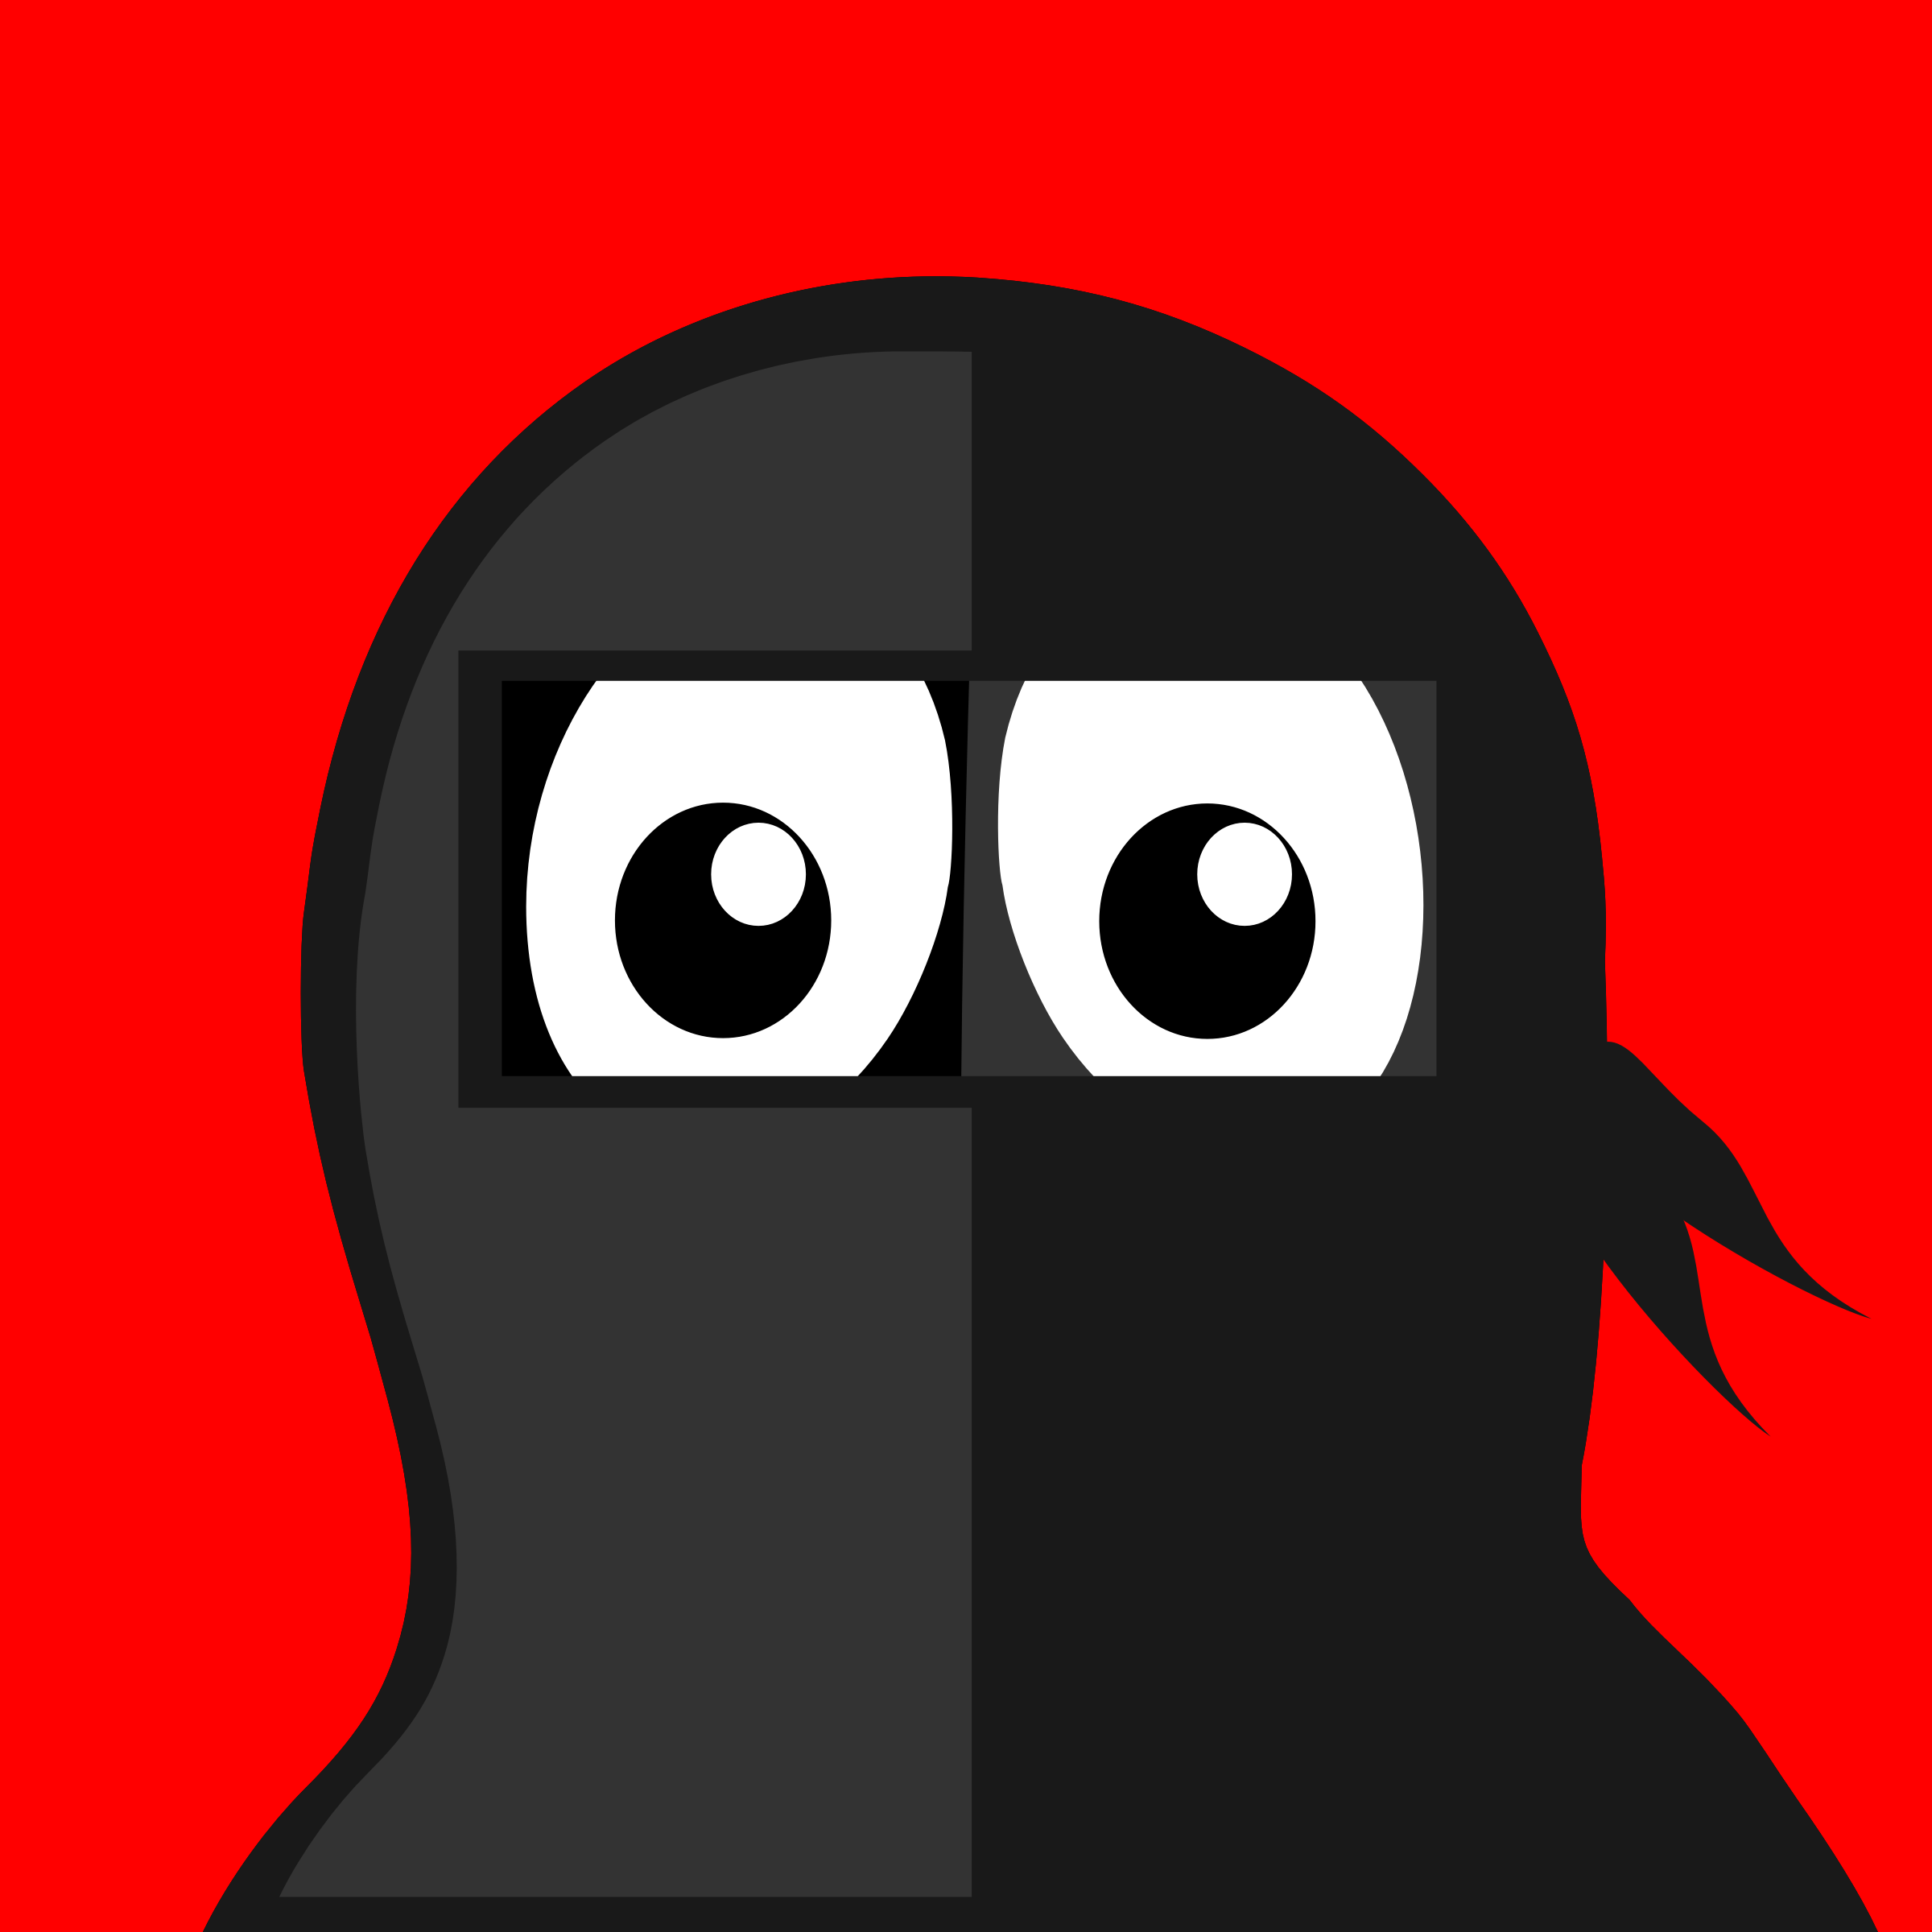 ninja penguin by BartM